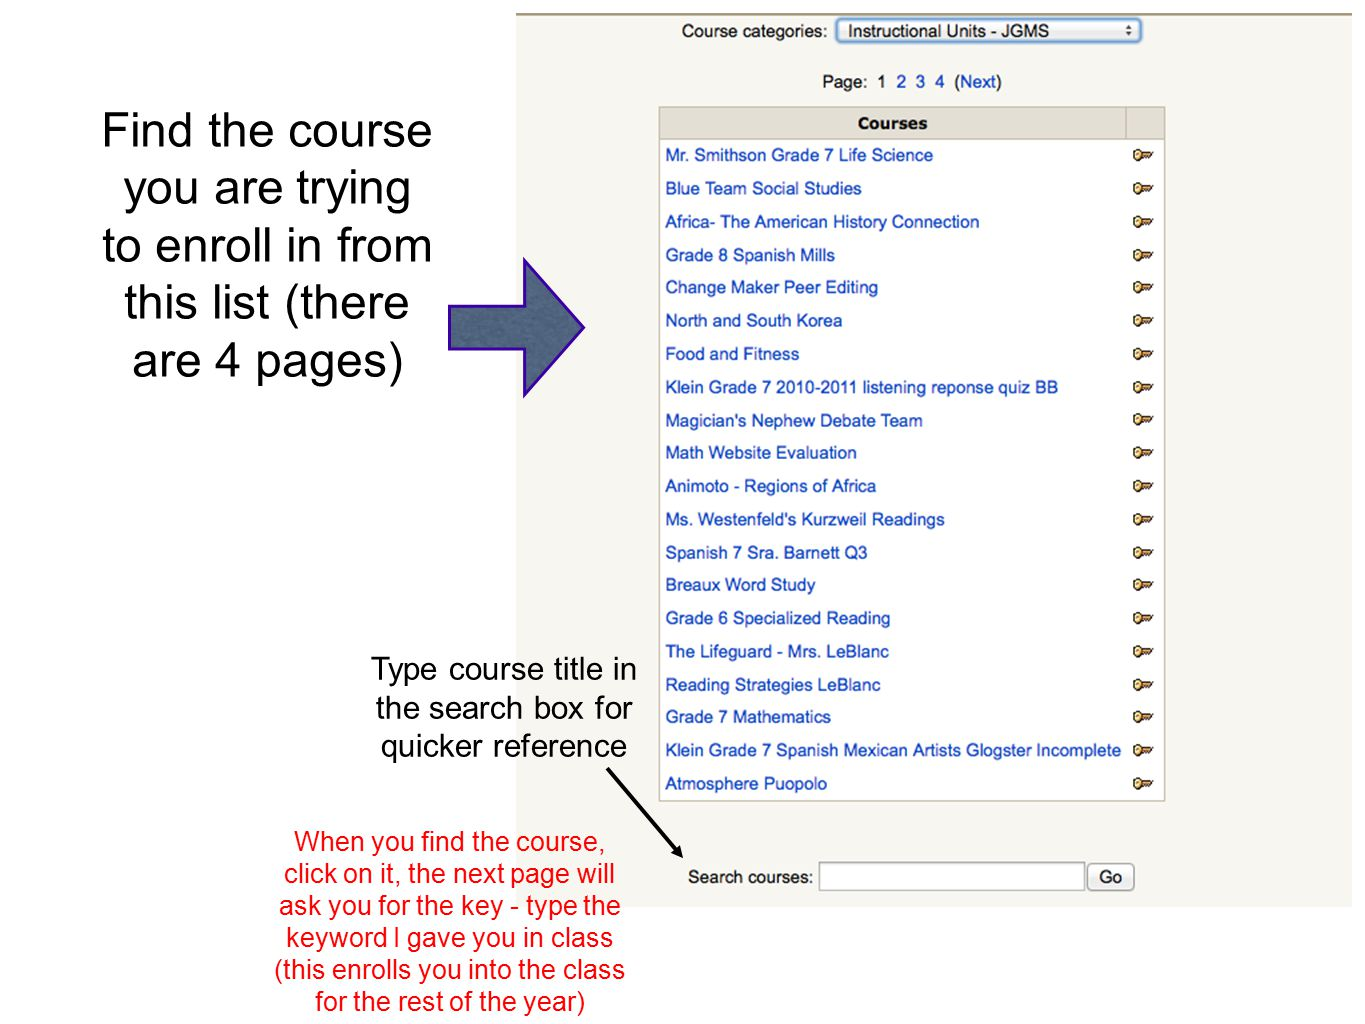 Find the course you are trying to enroll in from this list (there are 4 pages) Type course title in the search box for quicker reference When you find the course, click on it, the next page will ask you for the key - type the keyword I gave you in class (this enrolls you into the class for the rest of the year)